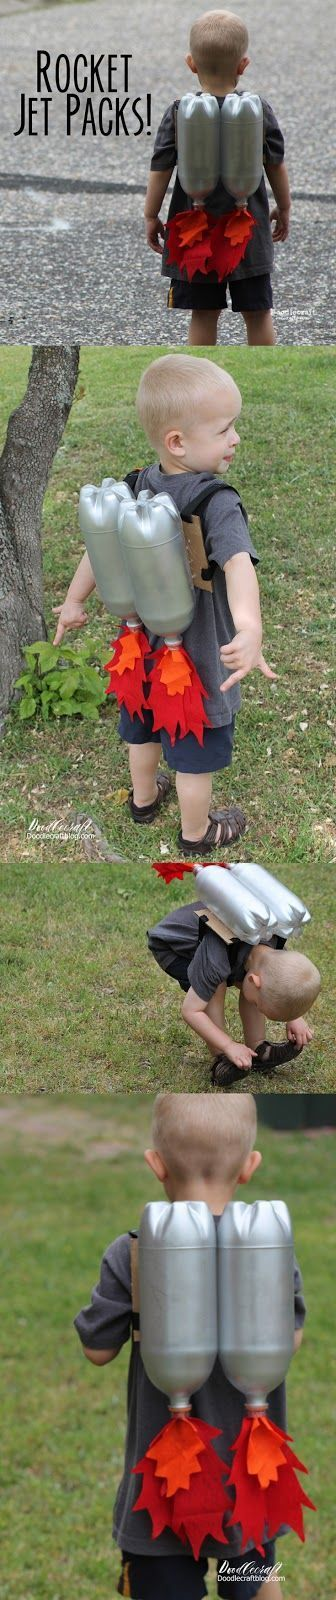 Rocket Jet Pack craft for kids!  Great for little imaginations, space birthday parties or play dates! #space_crafts_for_babies